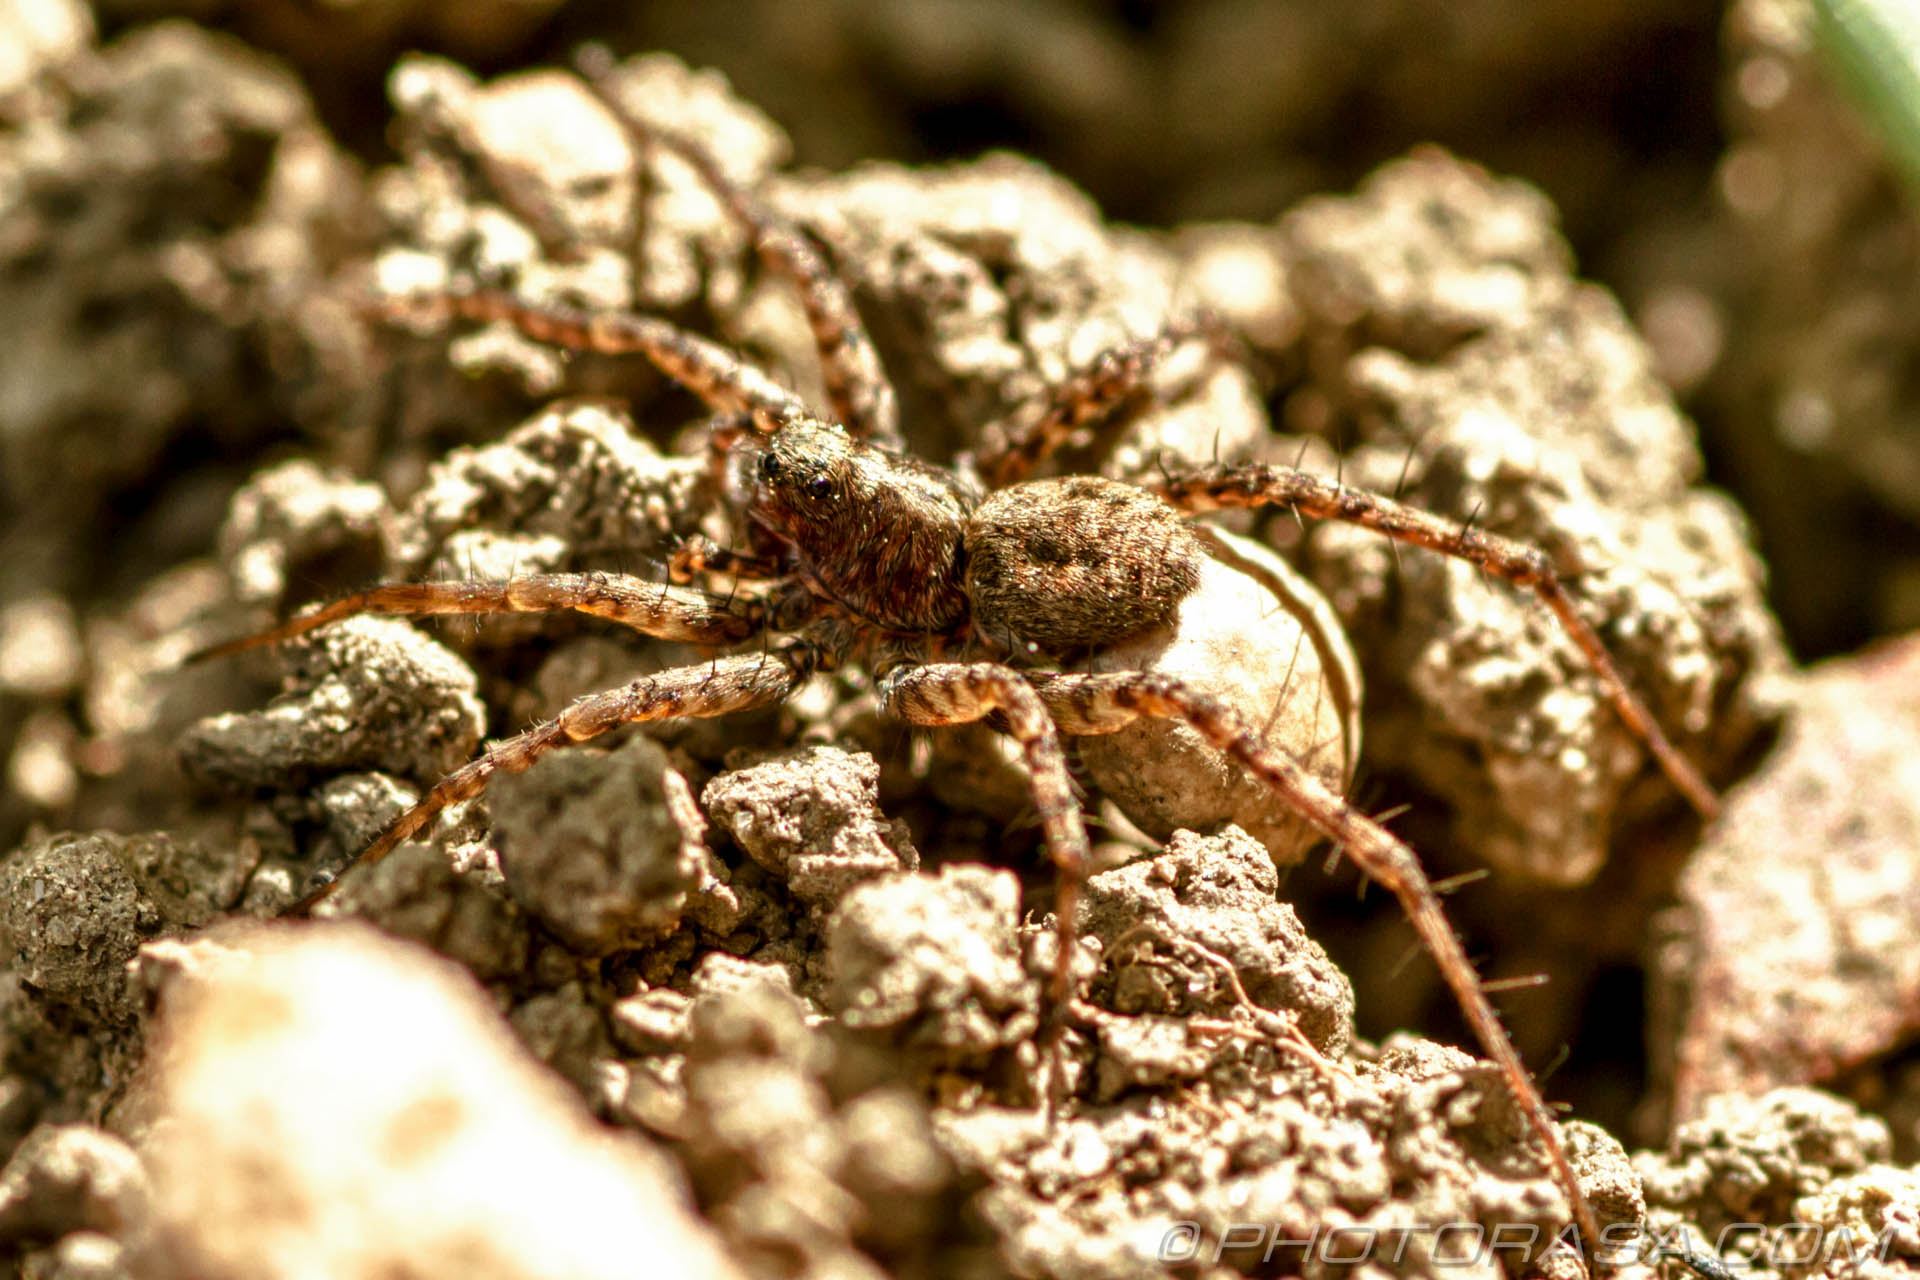 http://photorasa.com/wolf-spiders/pregnant-wolf-spider/